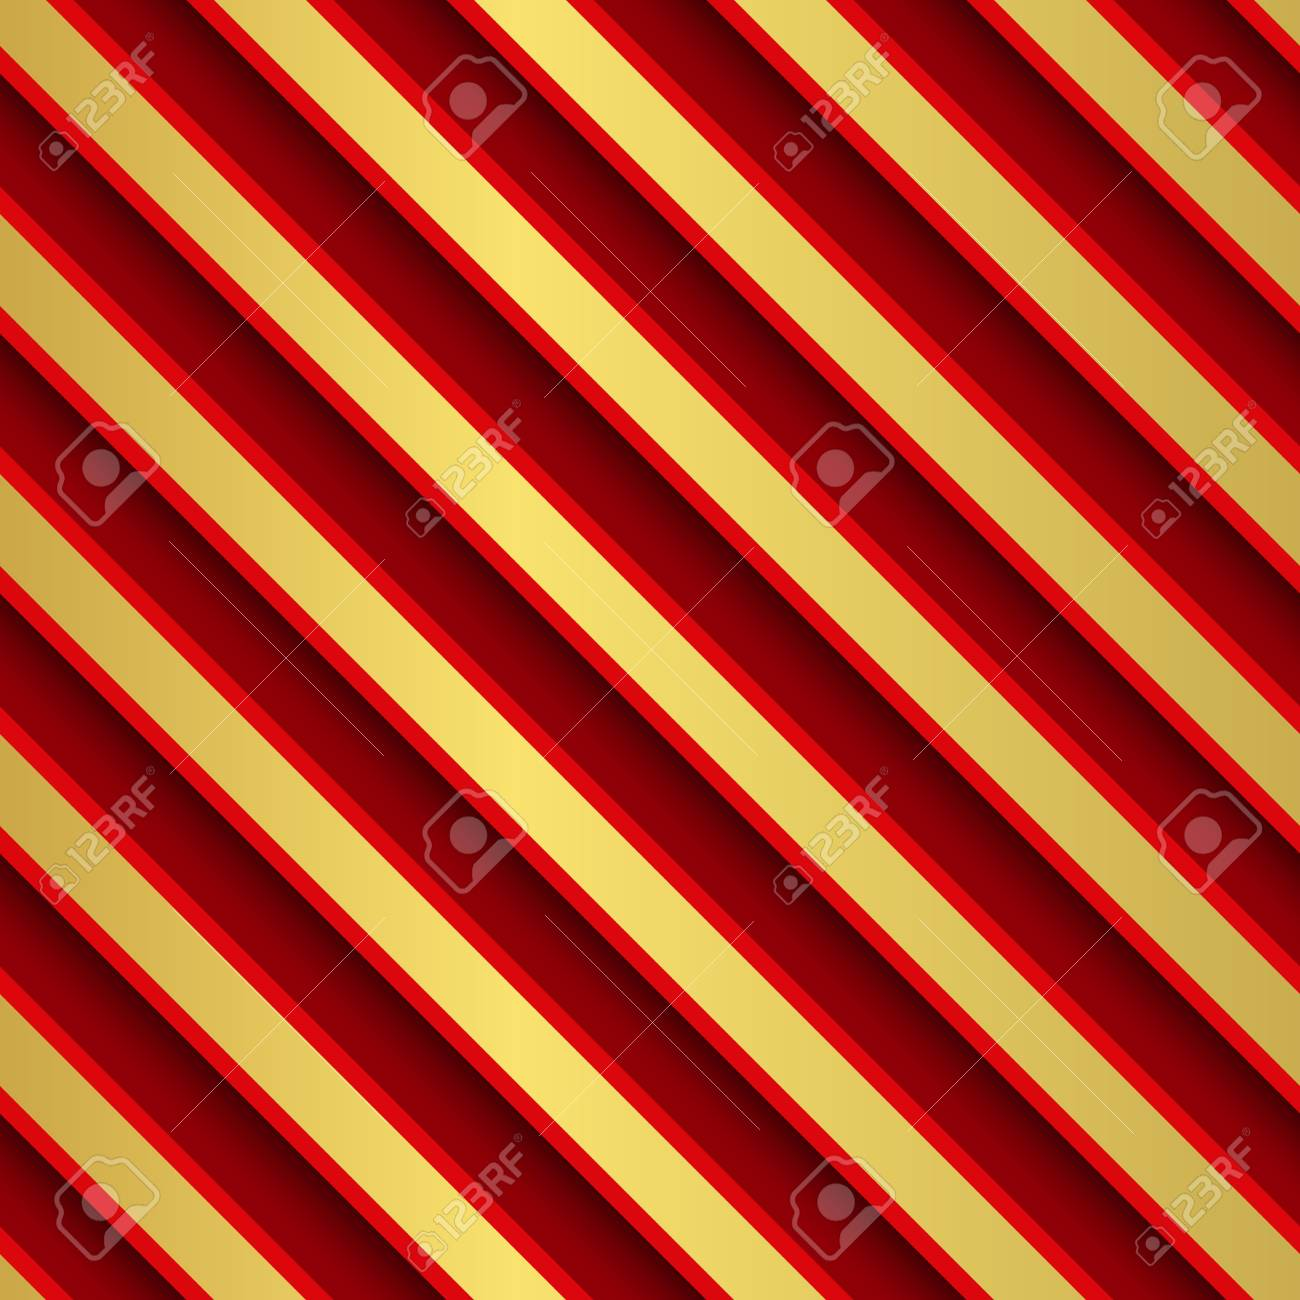 Seamless Wrapping Paper Pattern EPS10 Vector - 51756298